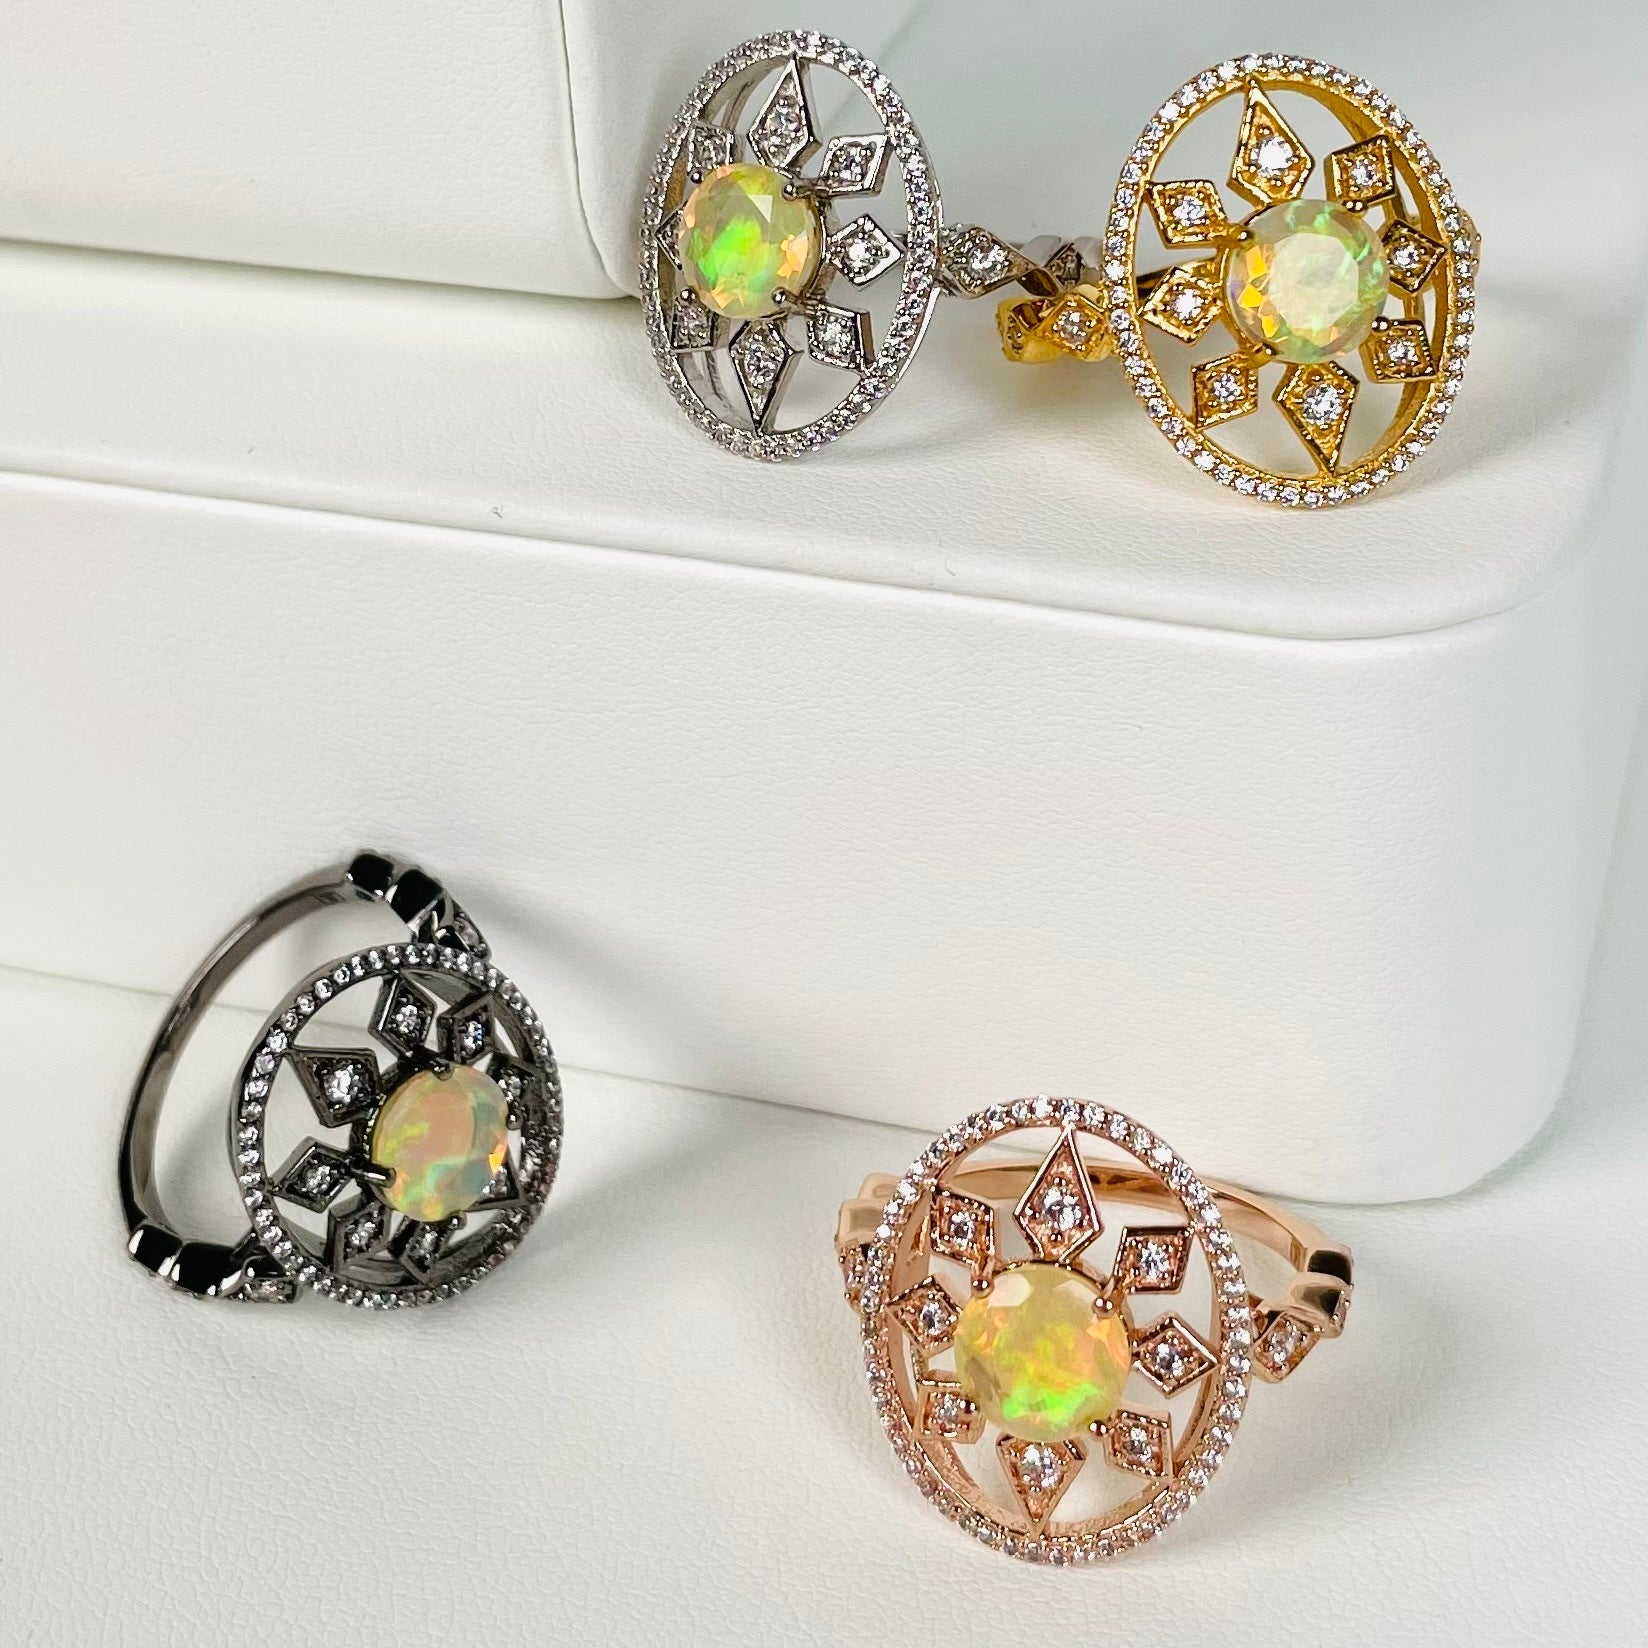 HESPERA TRIBE SPECIAL - GHOST INTERSTELLAR PENDANT